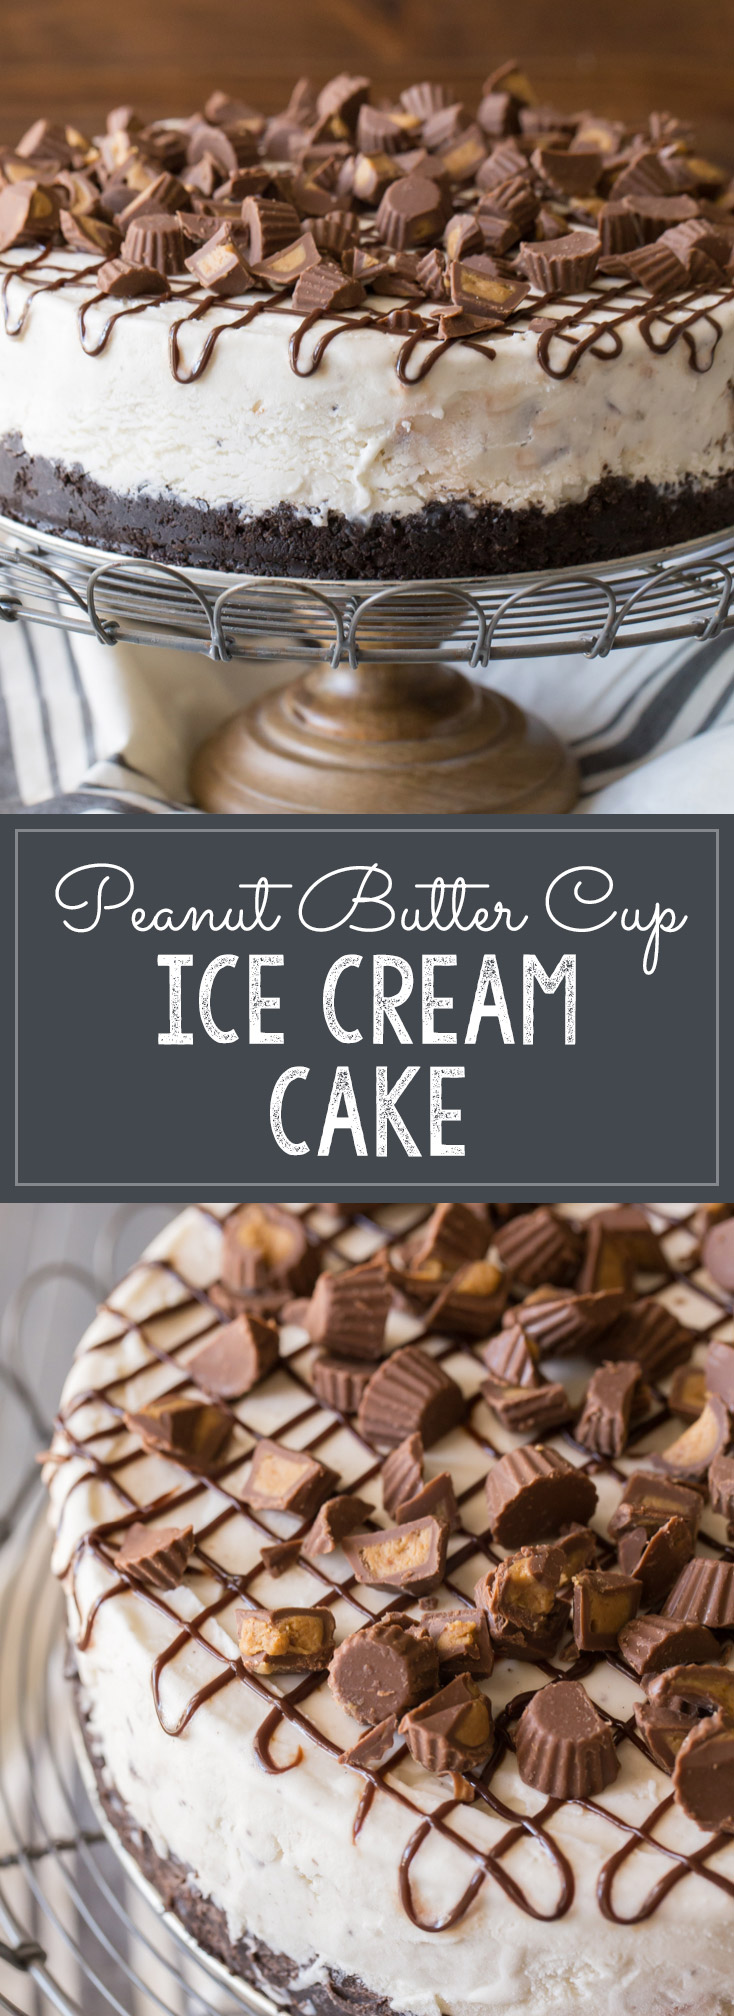 The easiest way to make an ice cream cake!